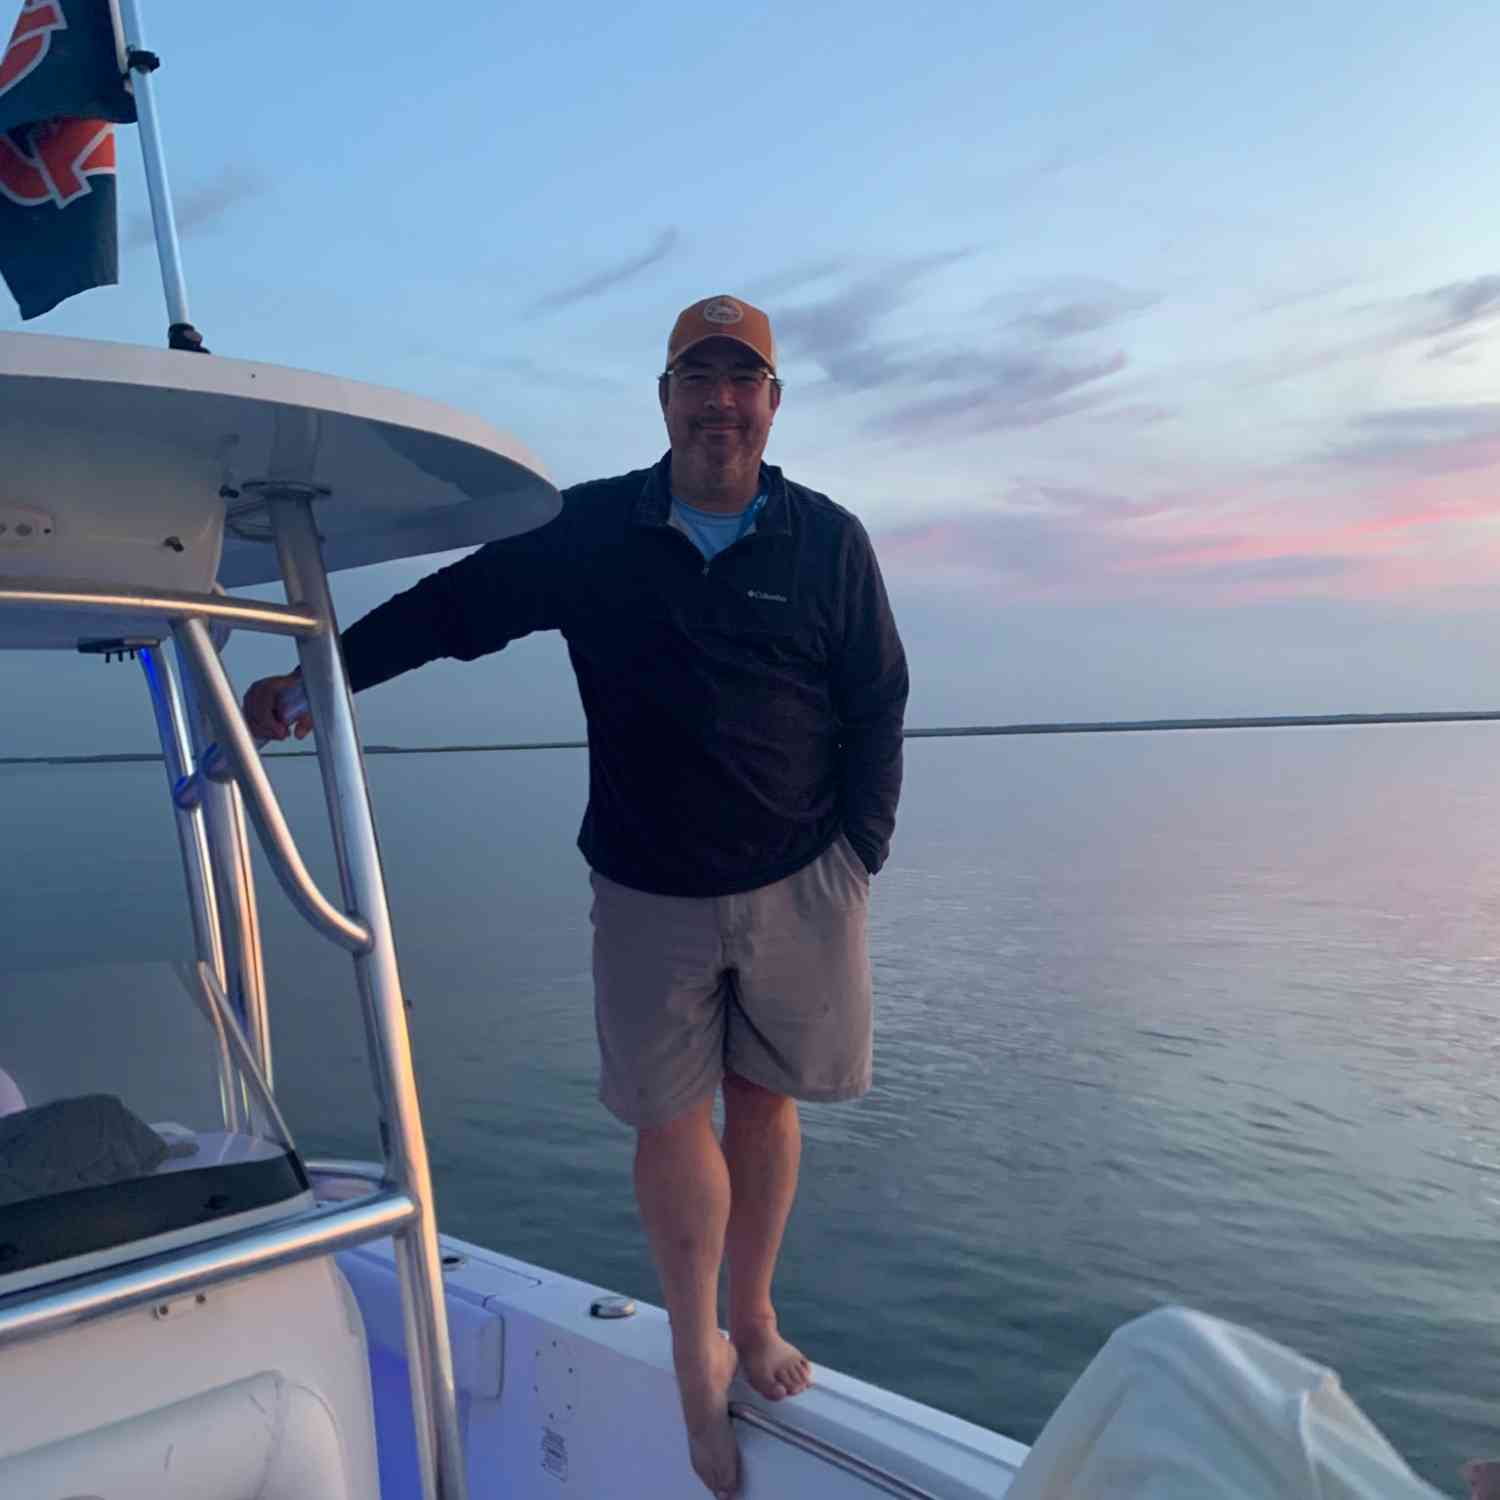 Title: Green Island Sound at Sunset - On board their Sportsman Heritage 211 Center Console - Location: Green Island Sound, Savannah, Georgia. Participating in the Photo Contest #SportsmanMay2020